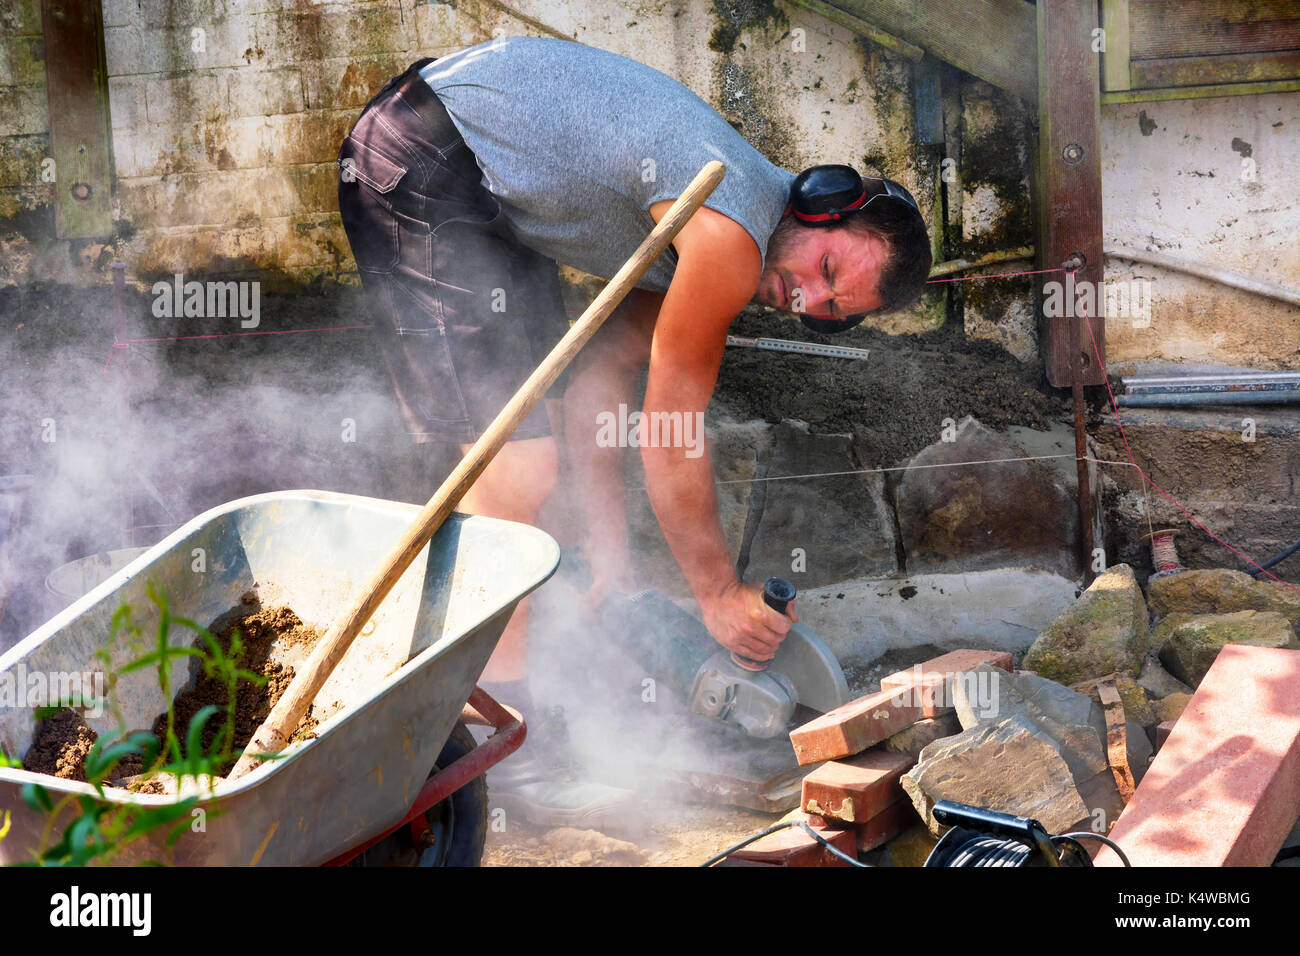 Worker cuts the bricks with a cut-off grinder. - Stock Image